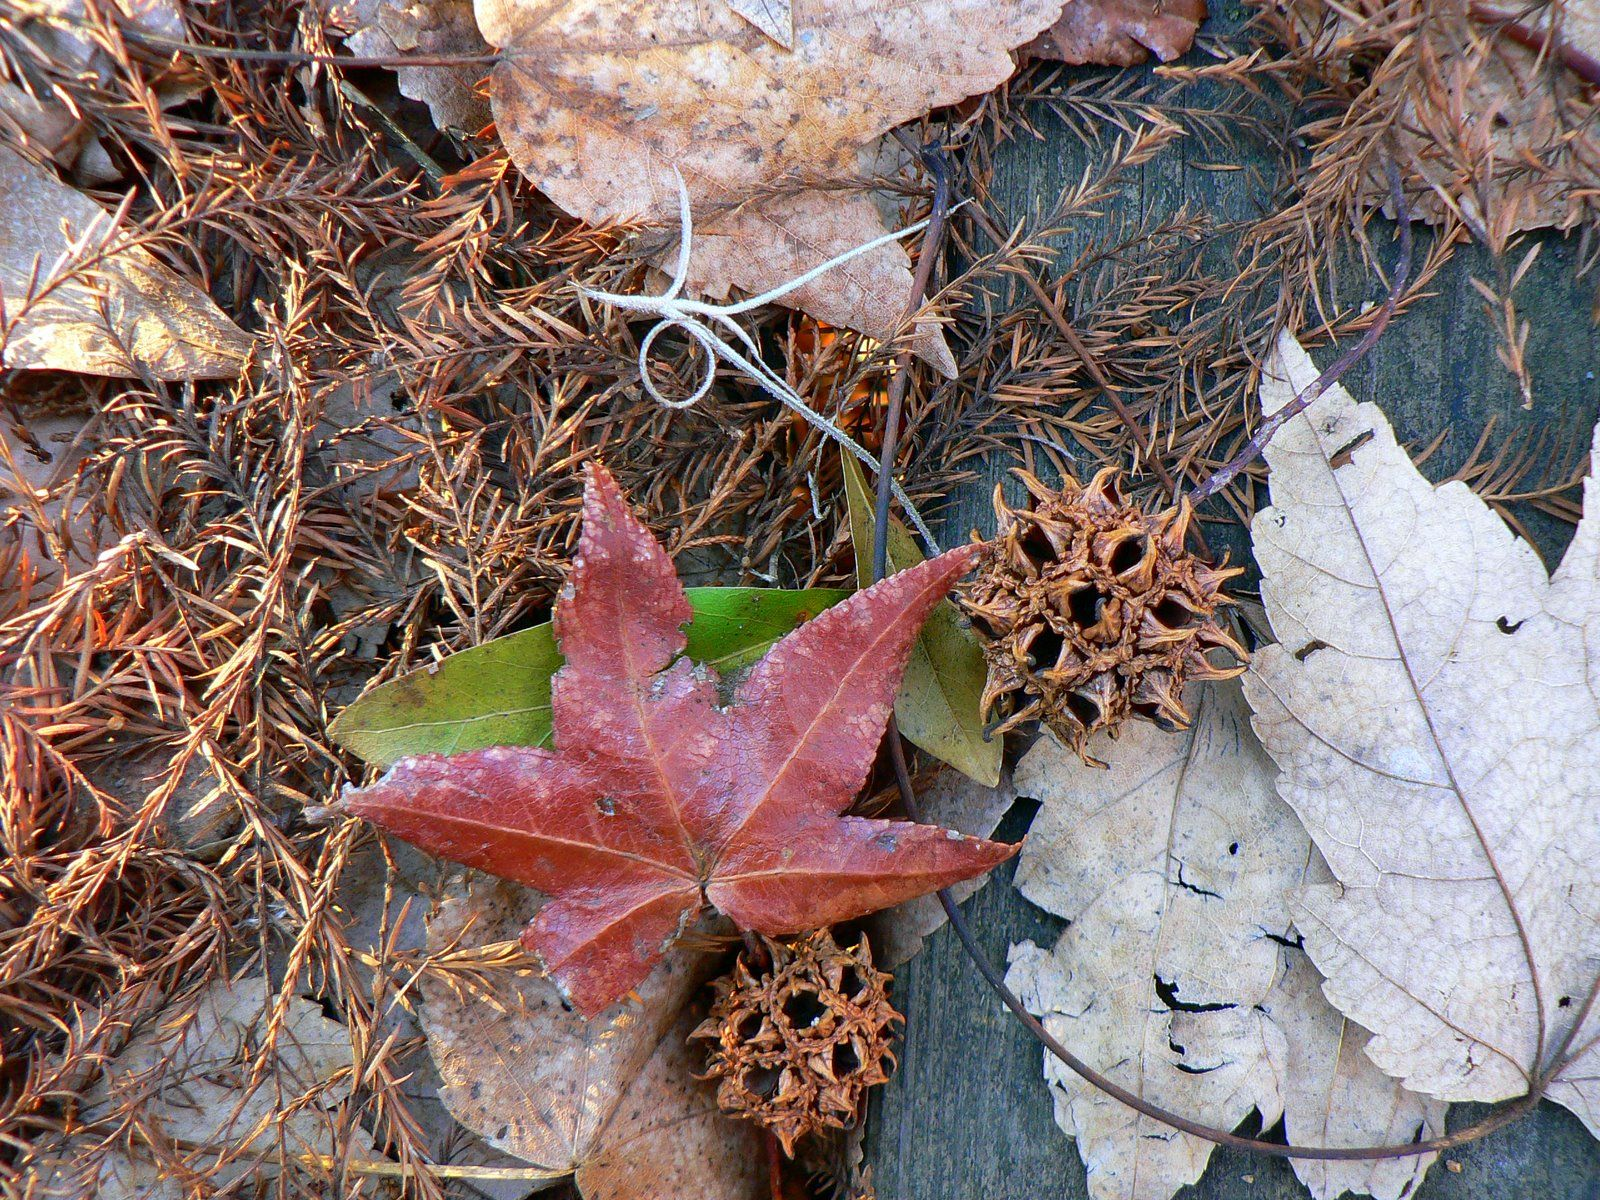 Sweetgum Balls Sweet Gum Balls With Images Sweet Gum Tree Seeds Seed Pods